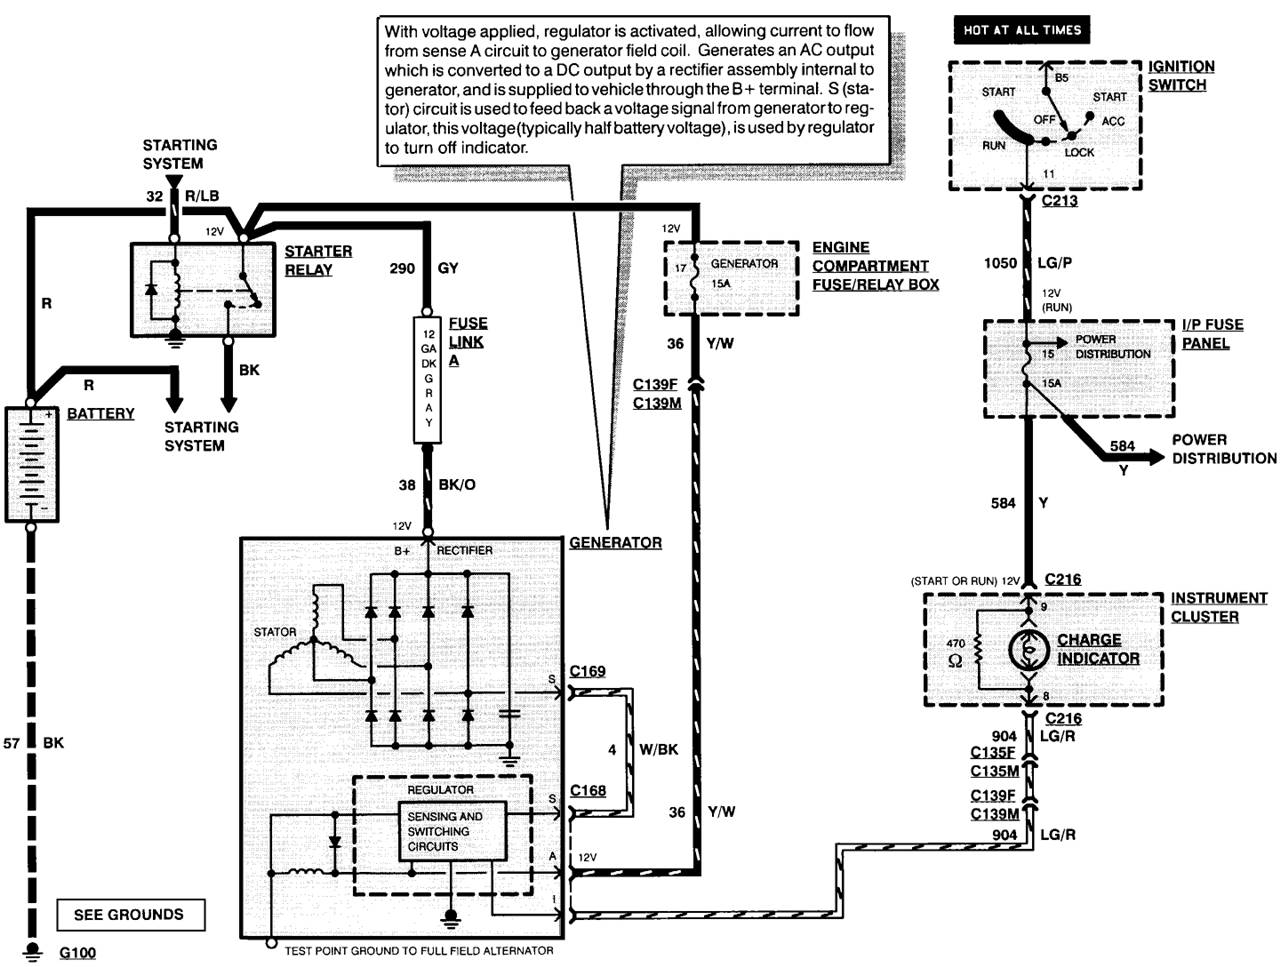 alternator diagram wiring 2007 kia rio radio 2008 f150 charging ujbljt danielaharde de manual e books rh 1 made4dogs